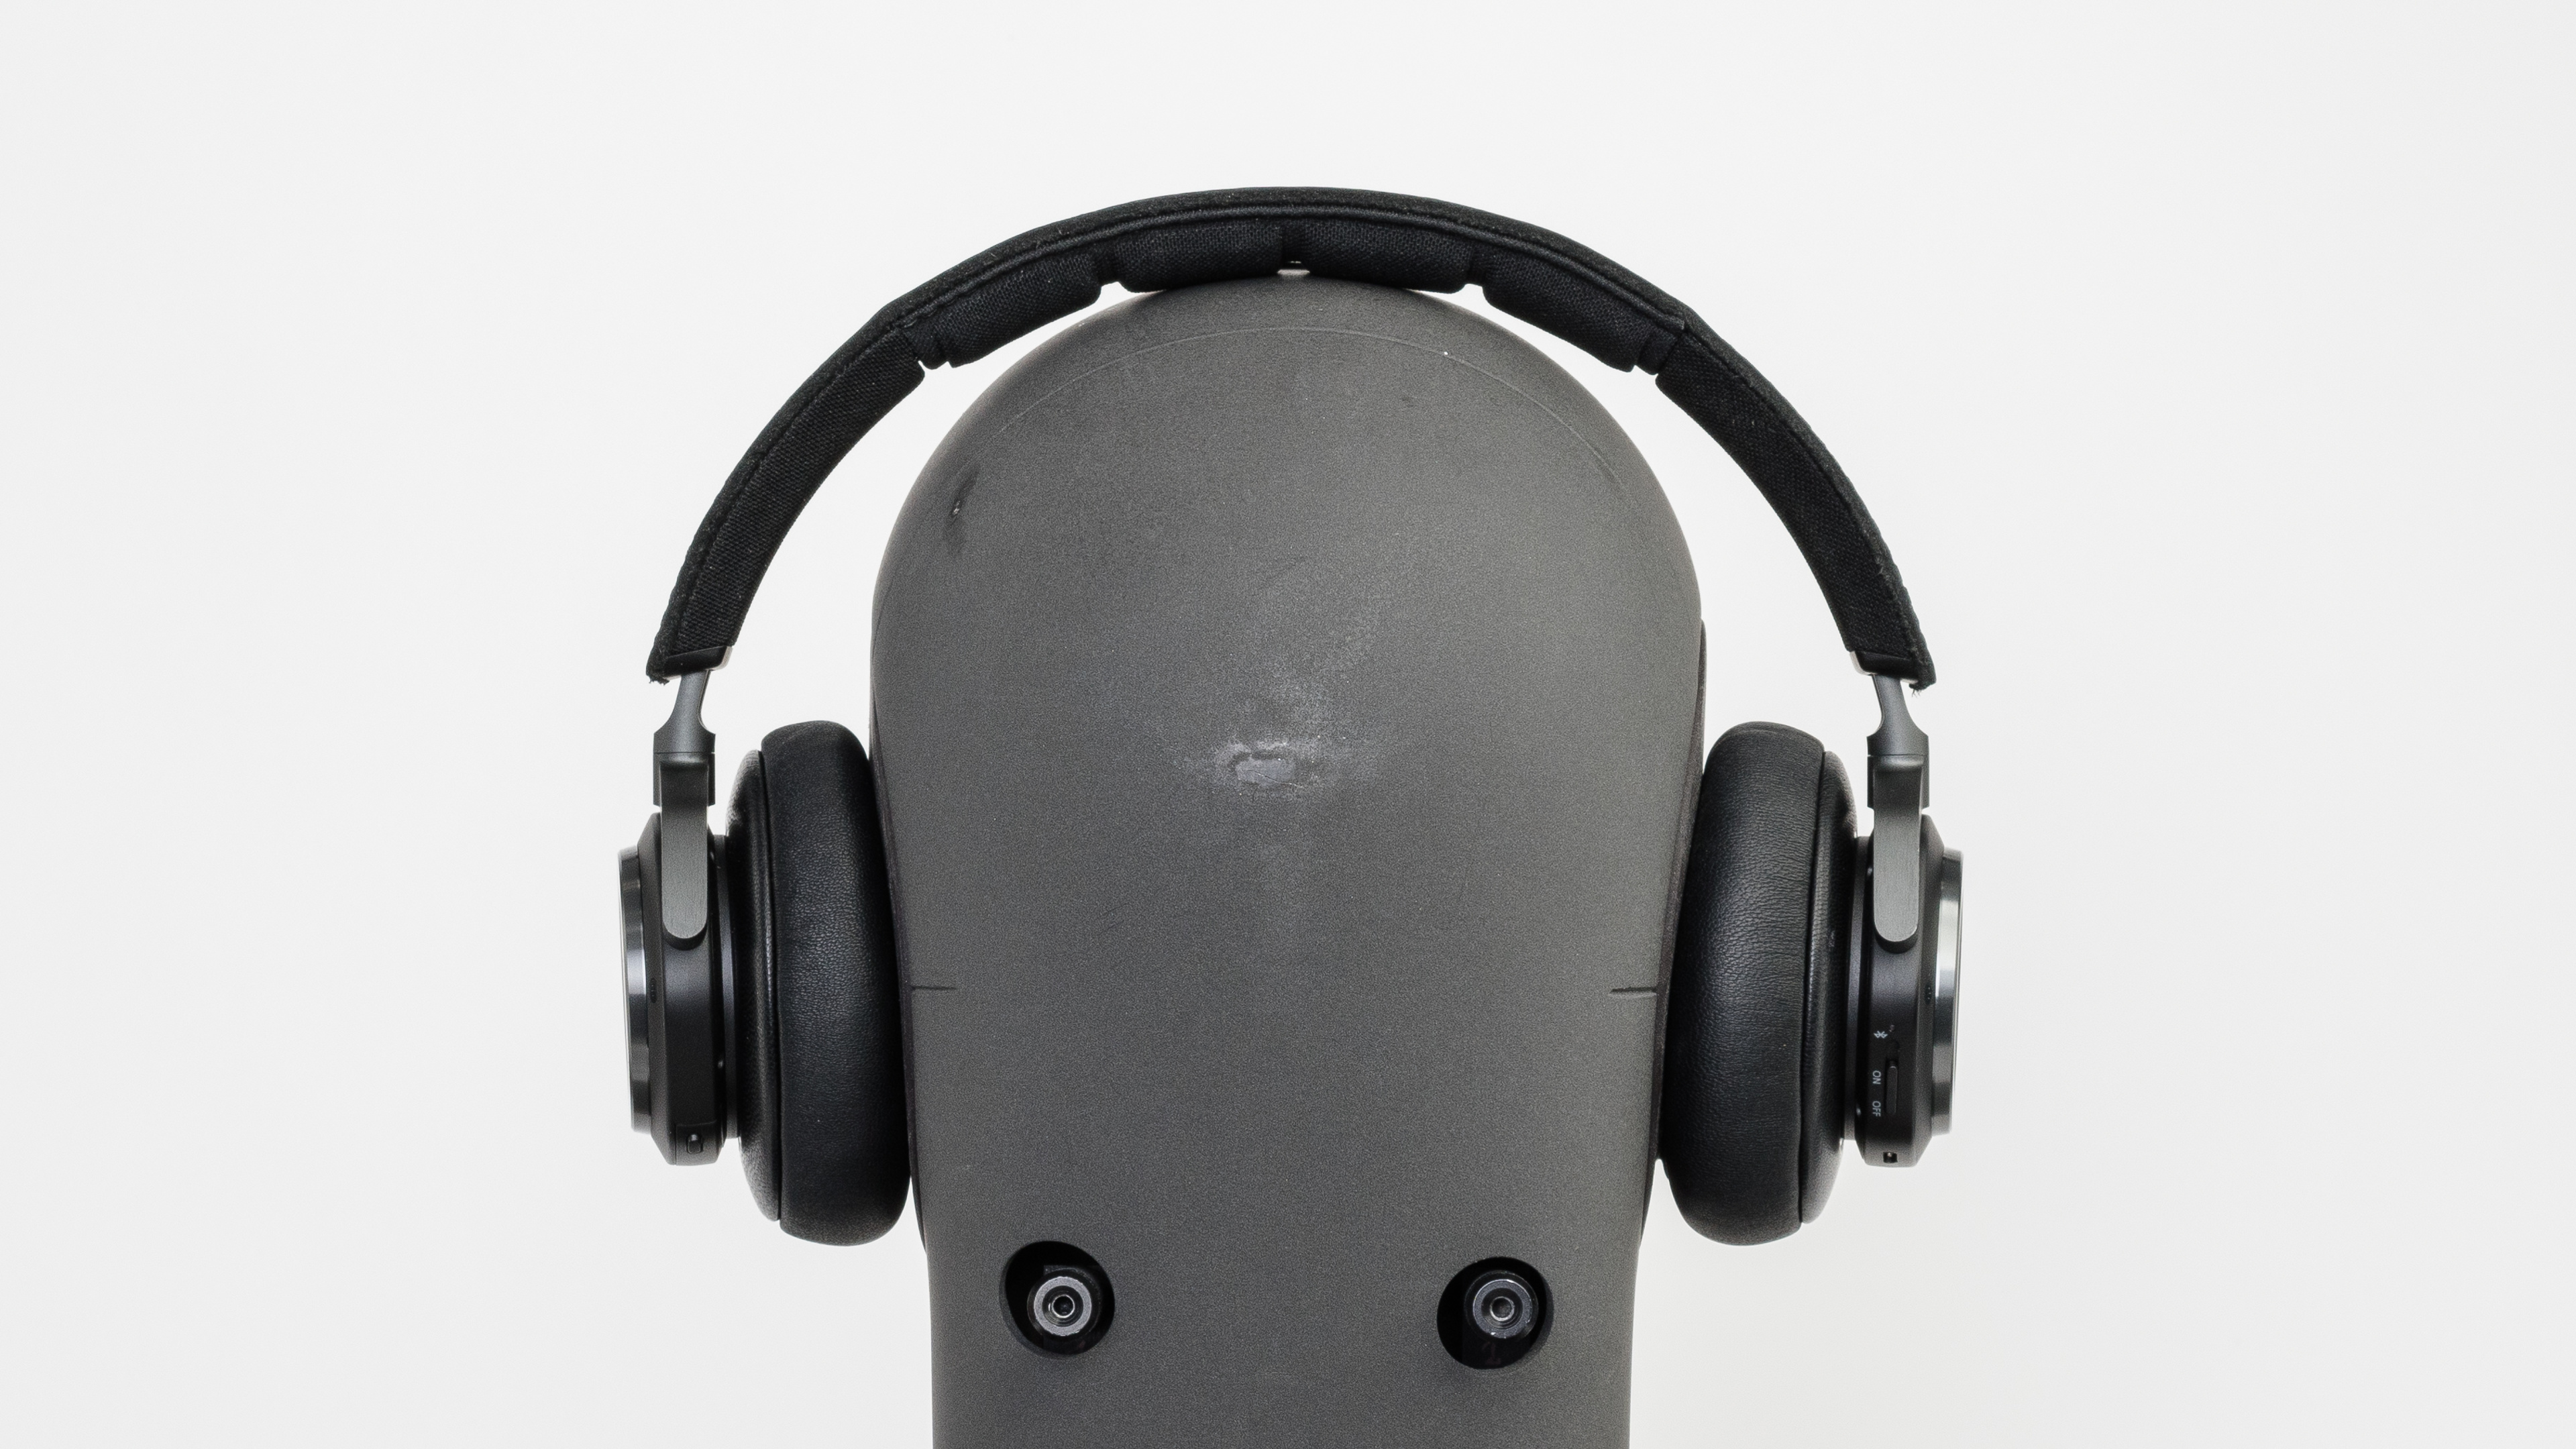 Bo Play Beoplay H9 Review Bang Ampamp Olufsen H3 Lightweight Earphone Silver Stability Picture